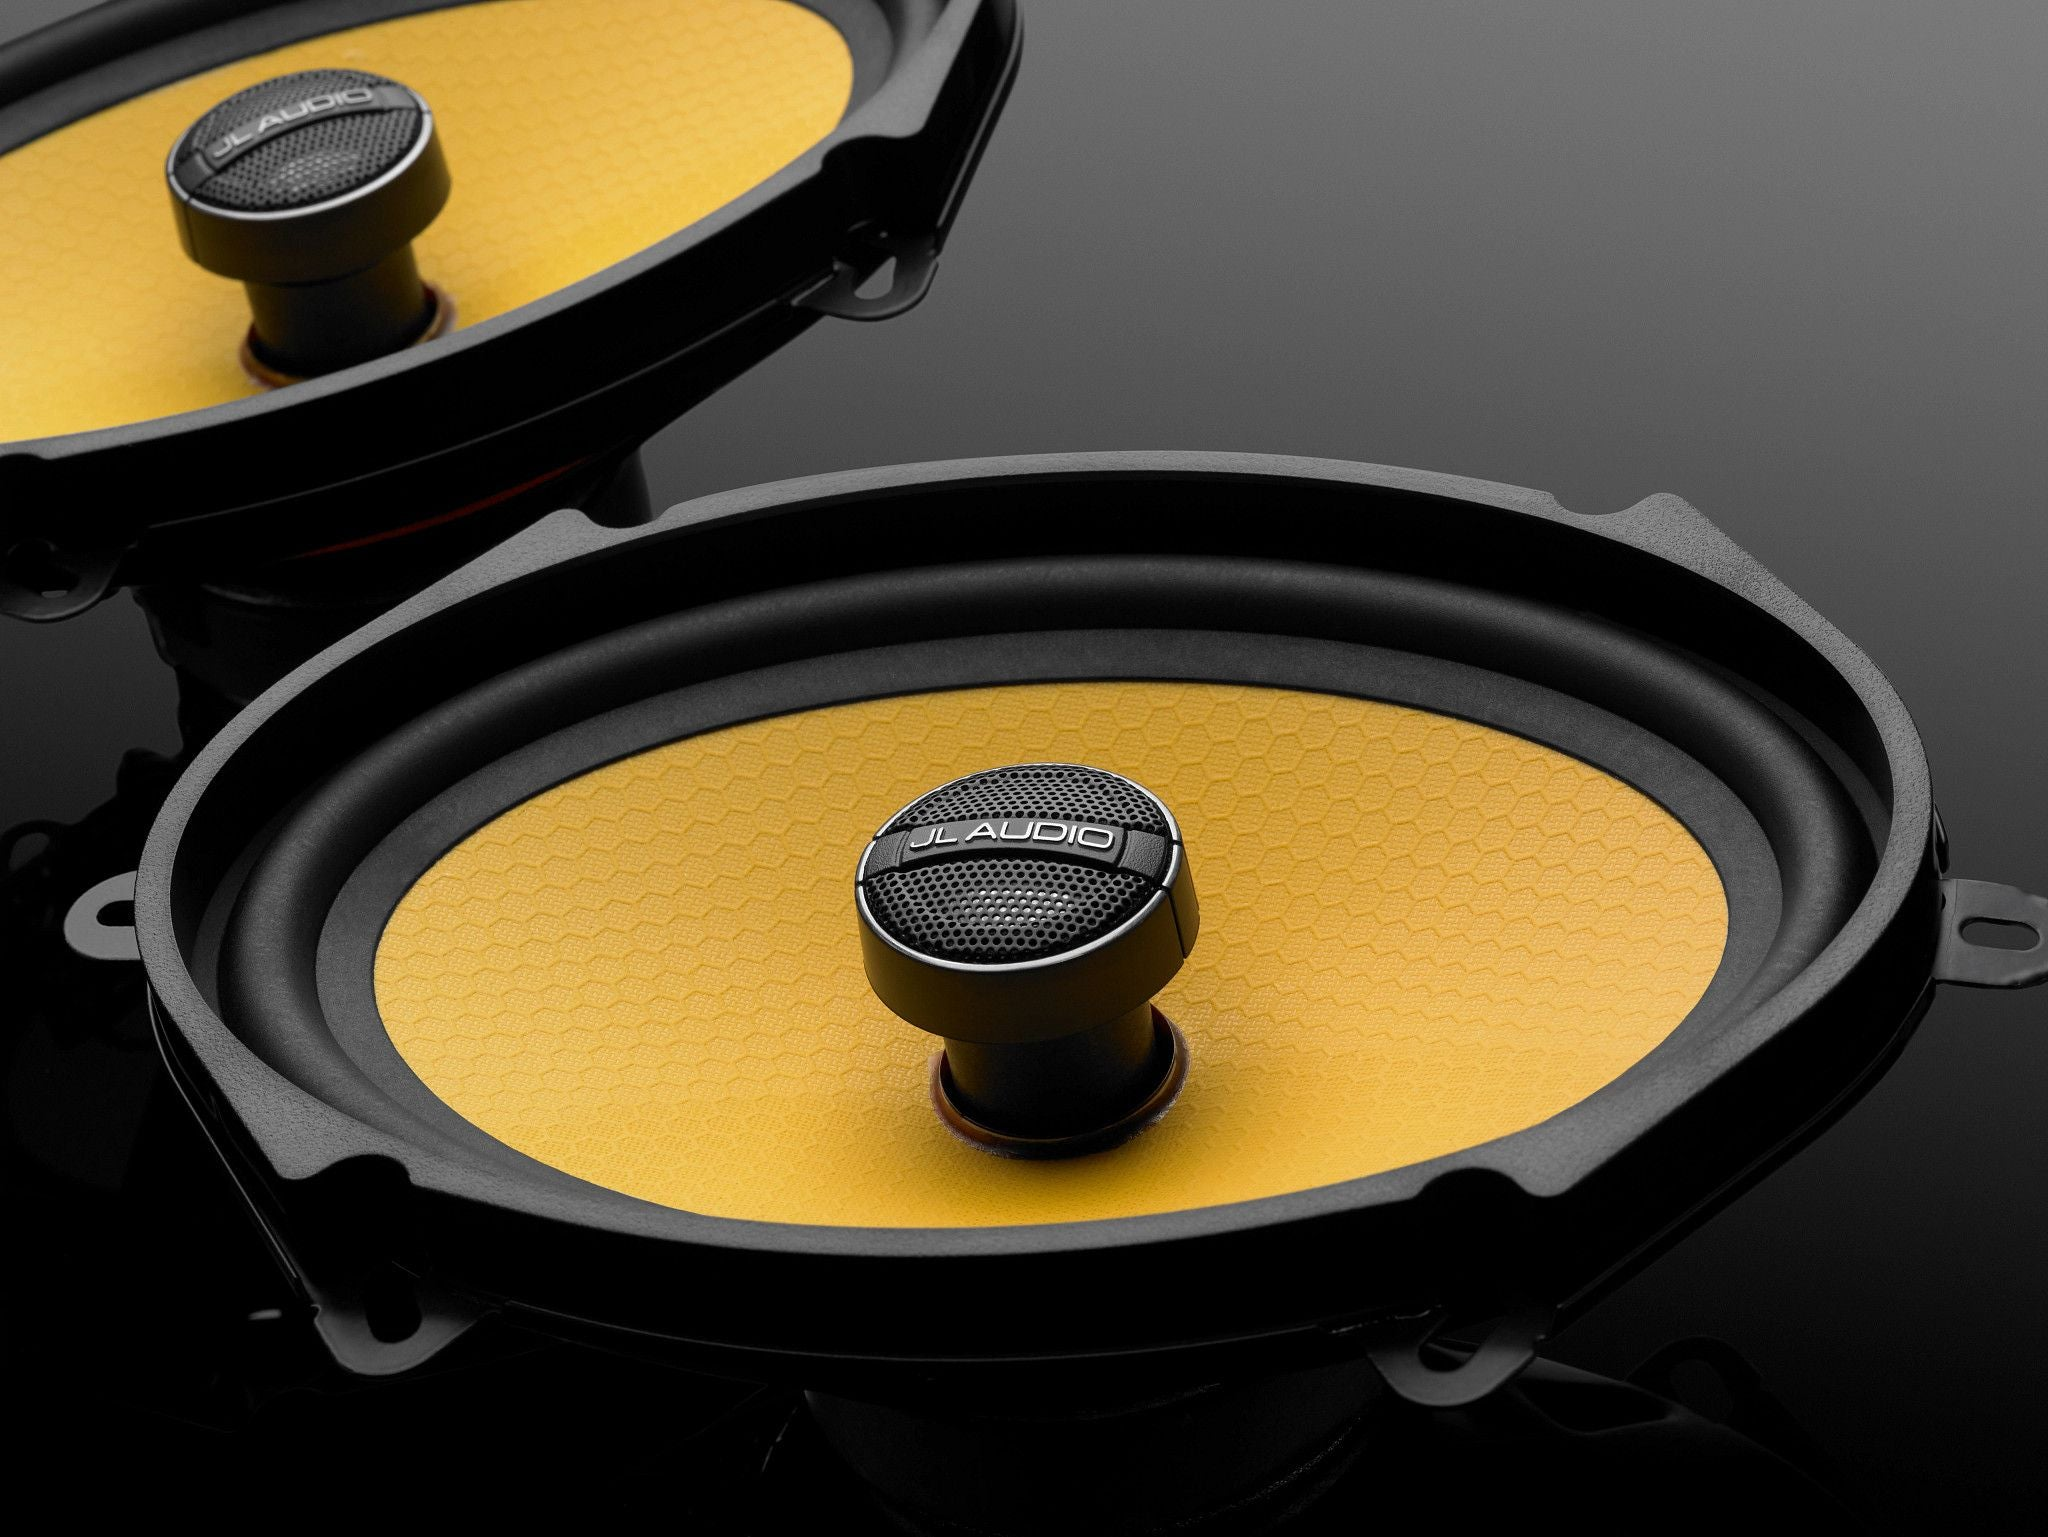 Detail of C1-570x Coaxial Speaker